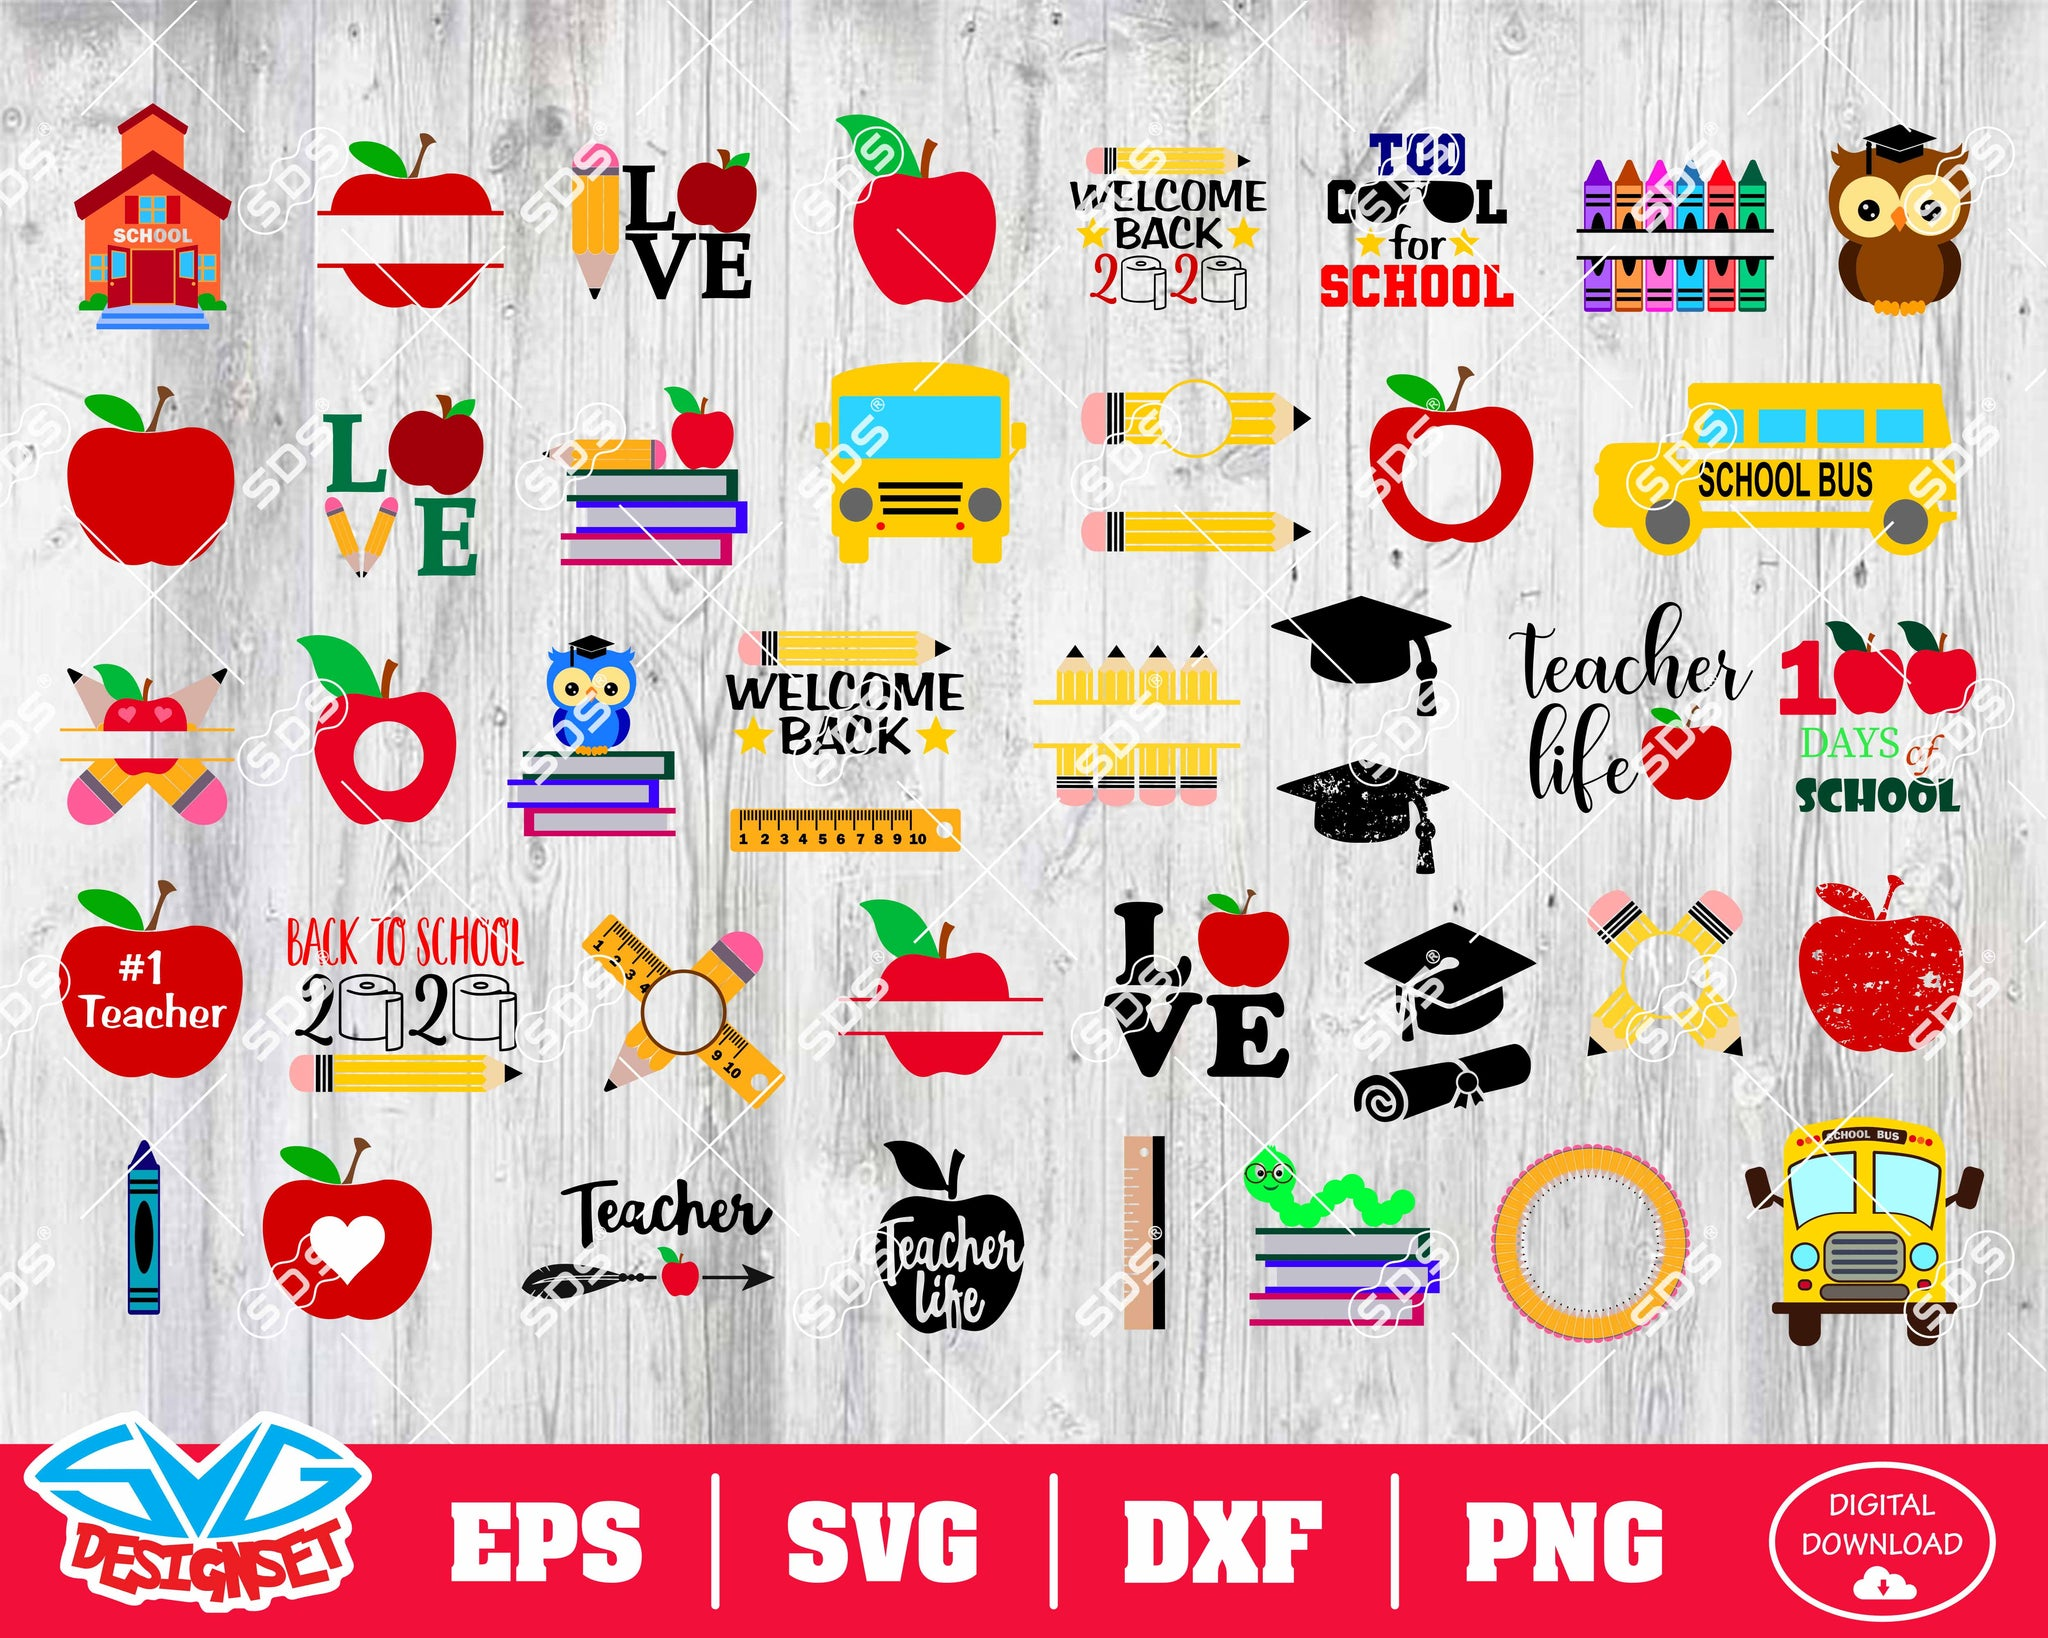 Back to School Svg, Dxf, Eps, Png, Clipart, Silhouette and Cutfiles #1